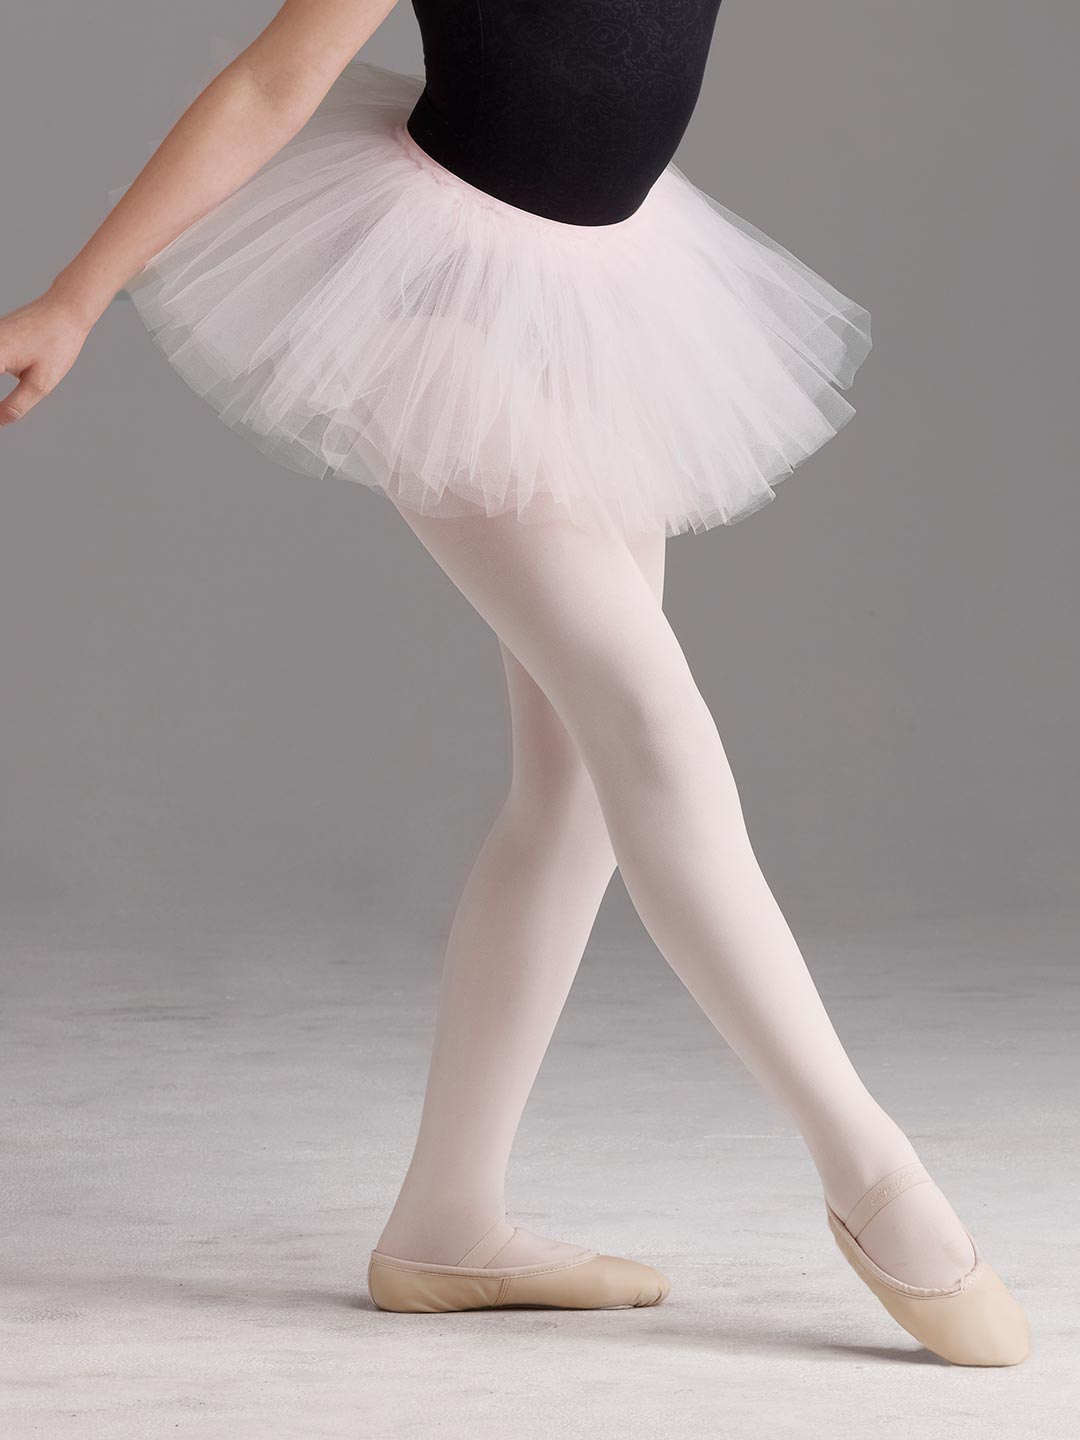 Waiting for a Prnce Tutu Skirt - Girls